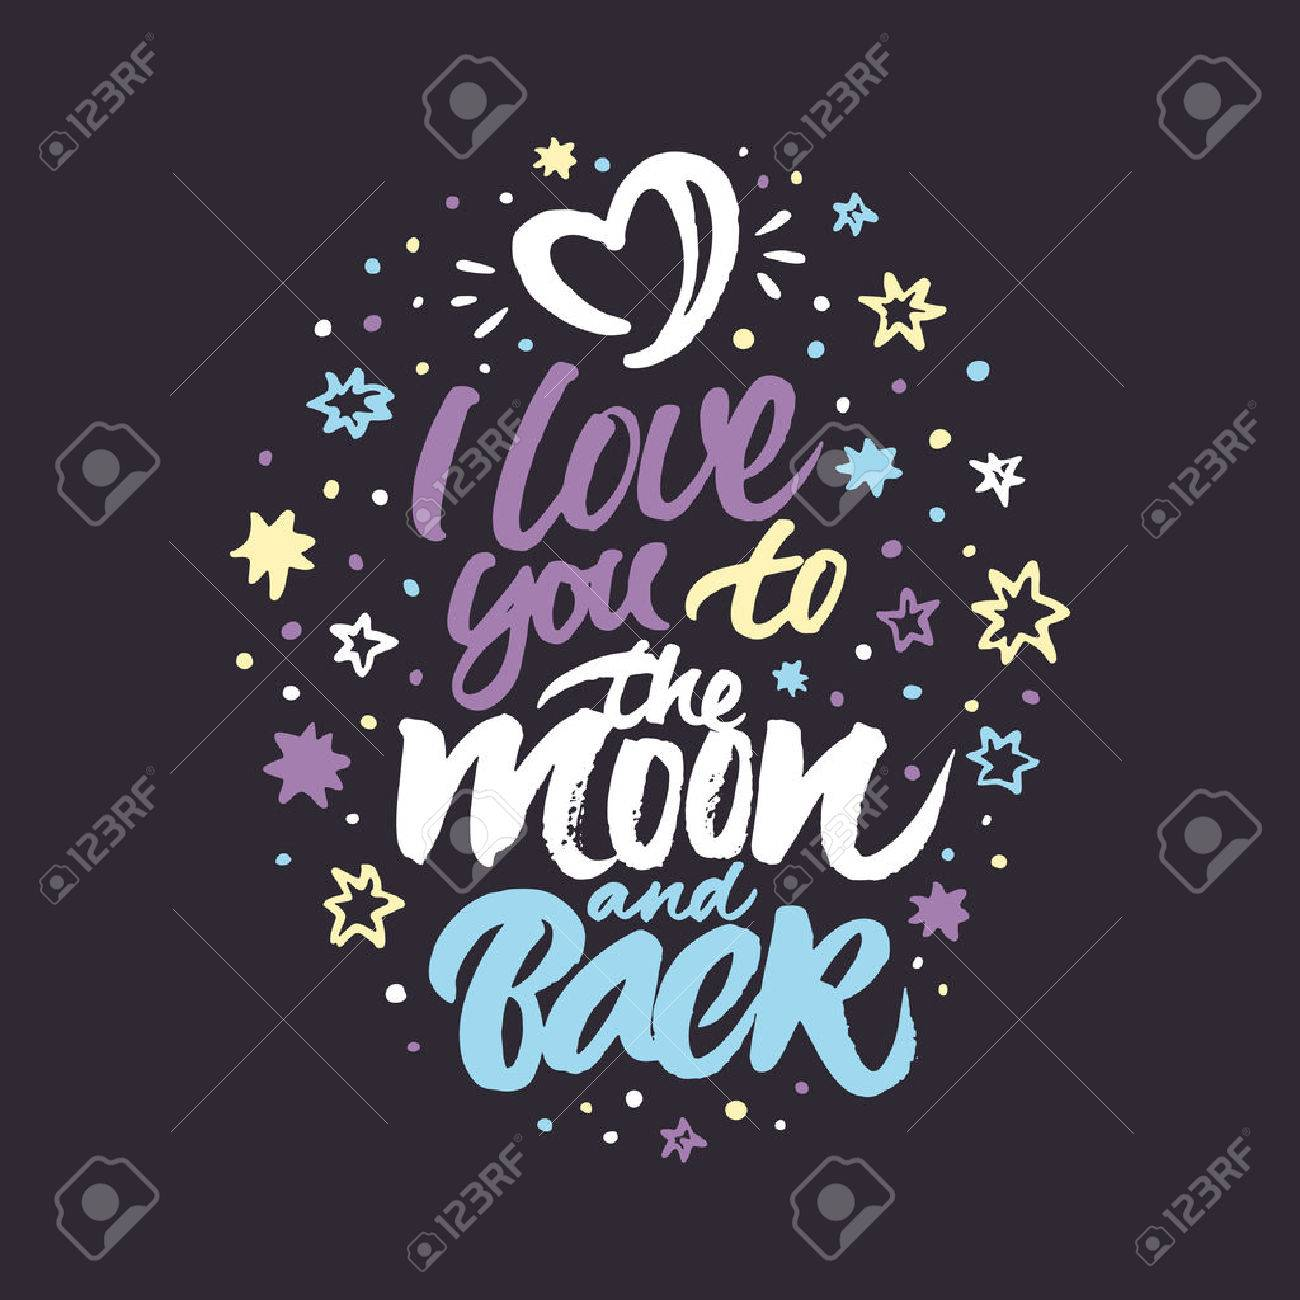 Inspirational quote 'I love you to the moon and back'  Colorful